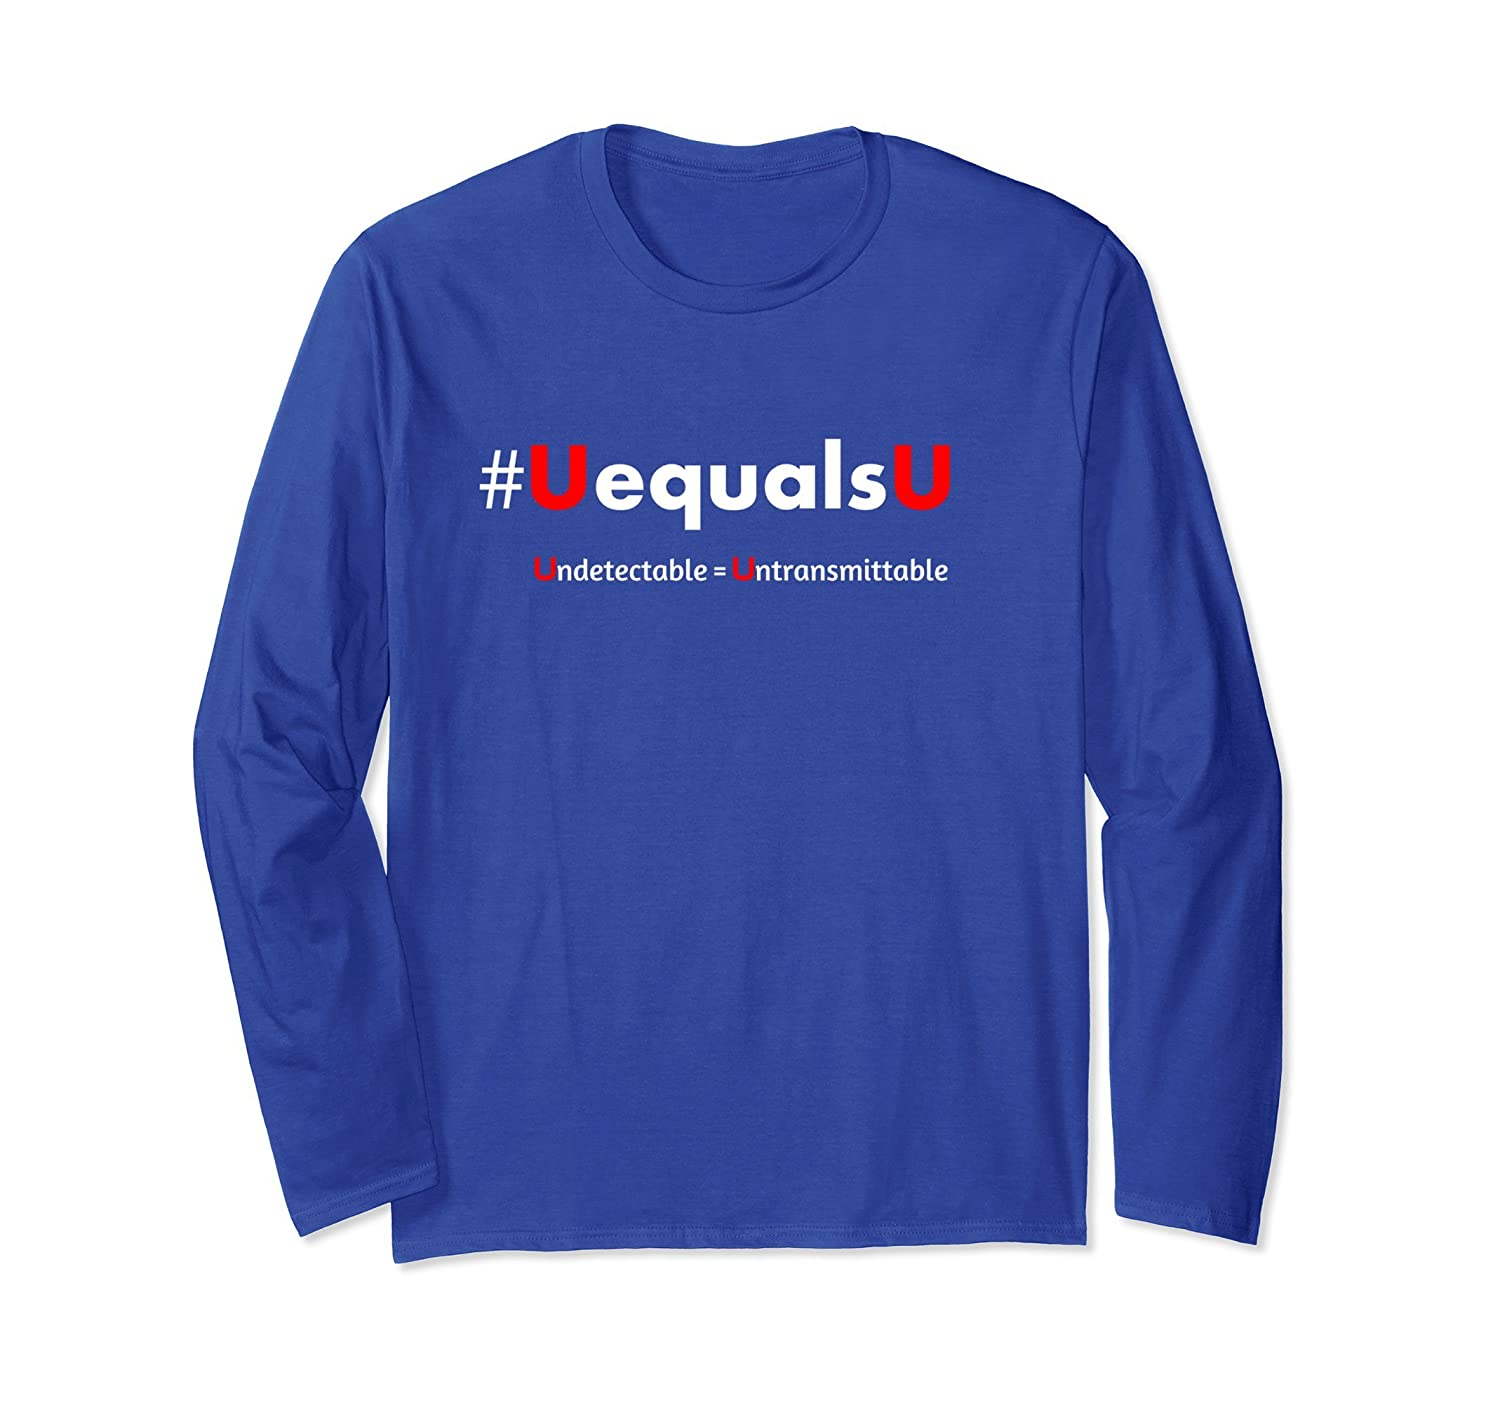 #UEqualsU HIV Stigma Awareness U Equals U Long Sleeve Shirt-ah my shirt one gift